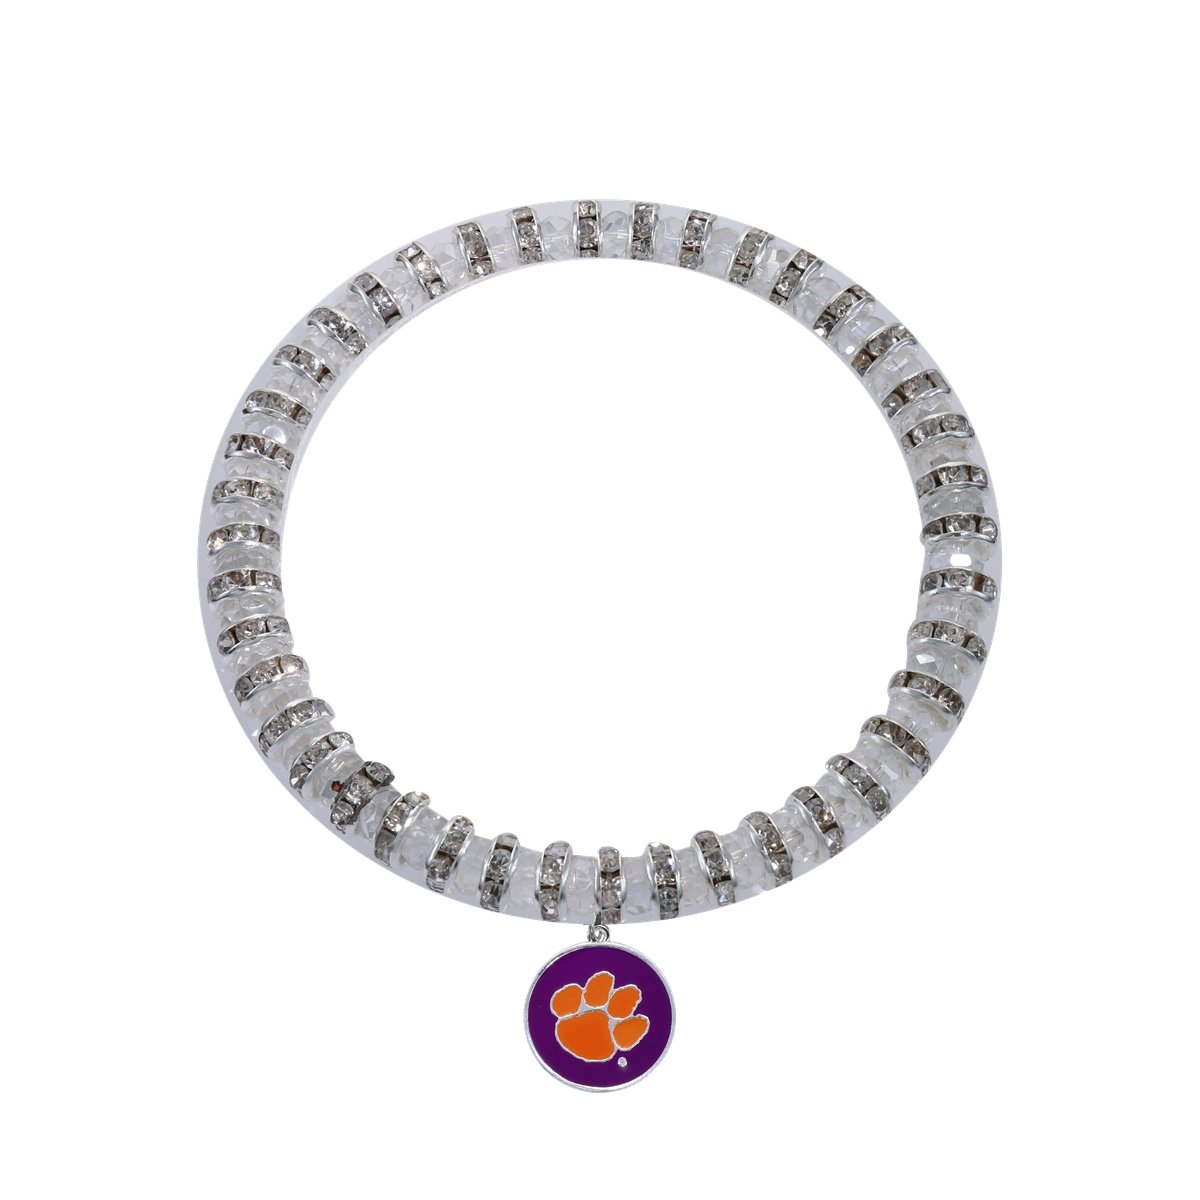 Burks Pendant Bracelet - Purple With Orange Paw - Mr. Knickerbocker